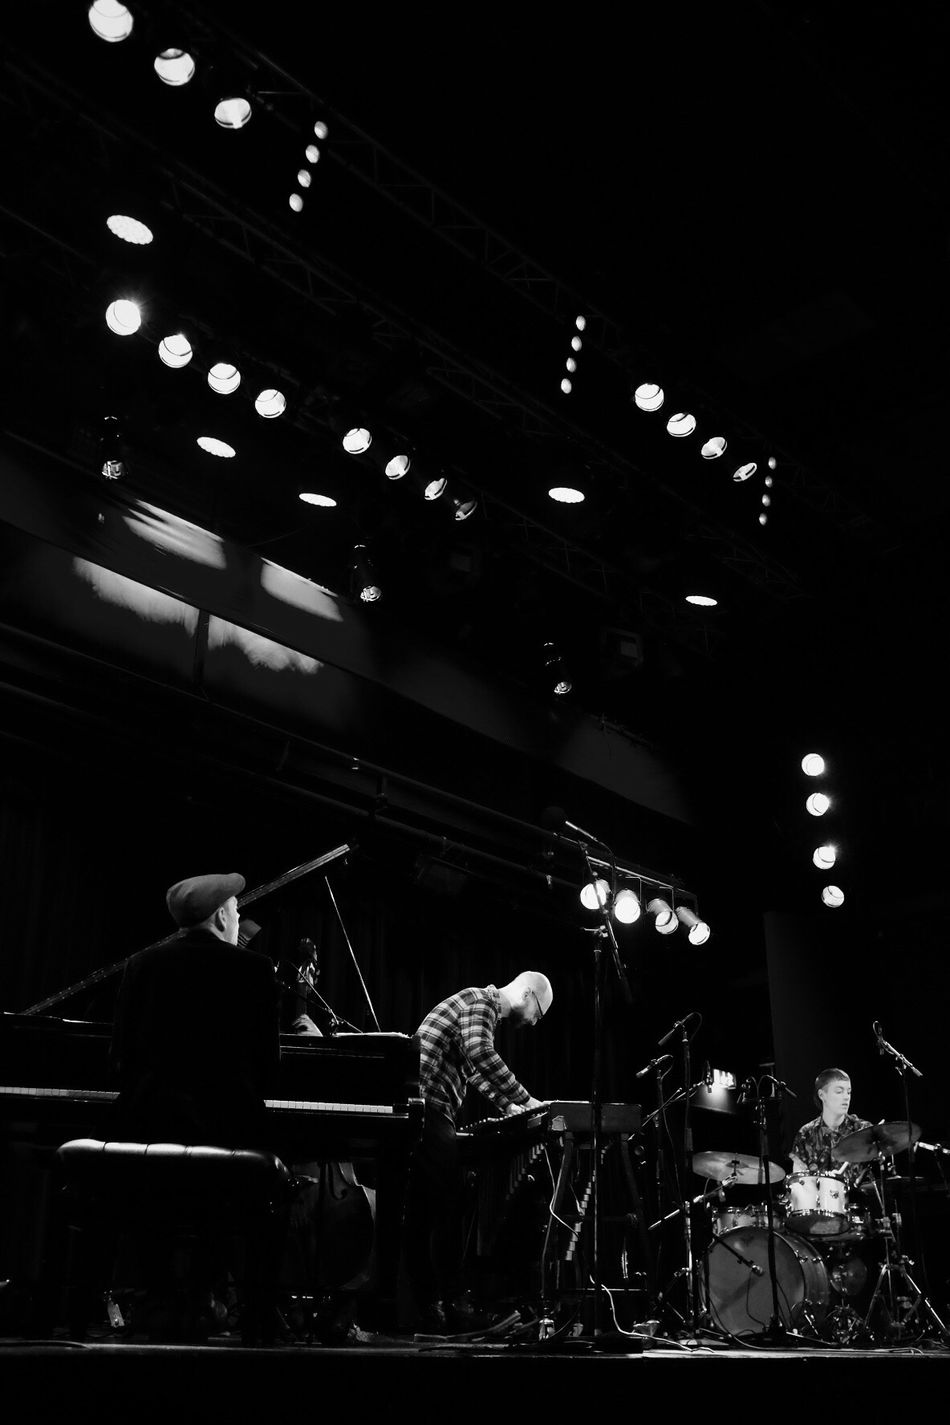 Music Arts Culture And Entertainment Musician Performance Jazz Monochrome Black And White Bw_collection Low Angle View